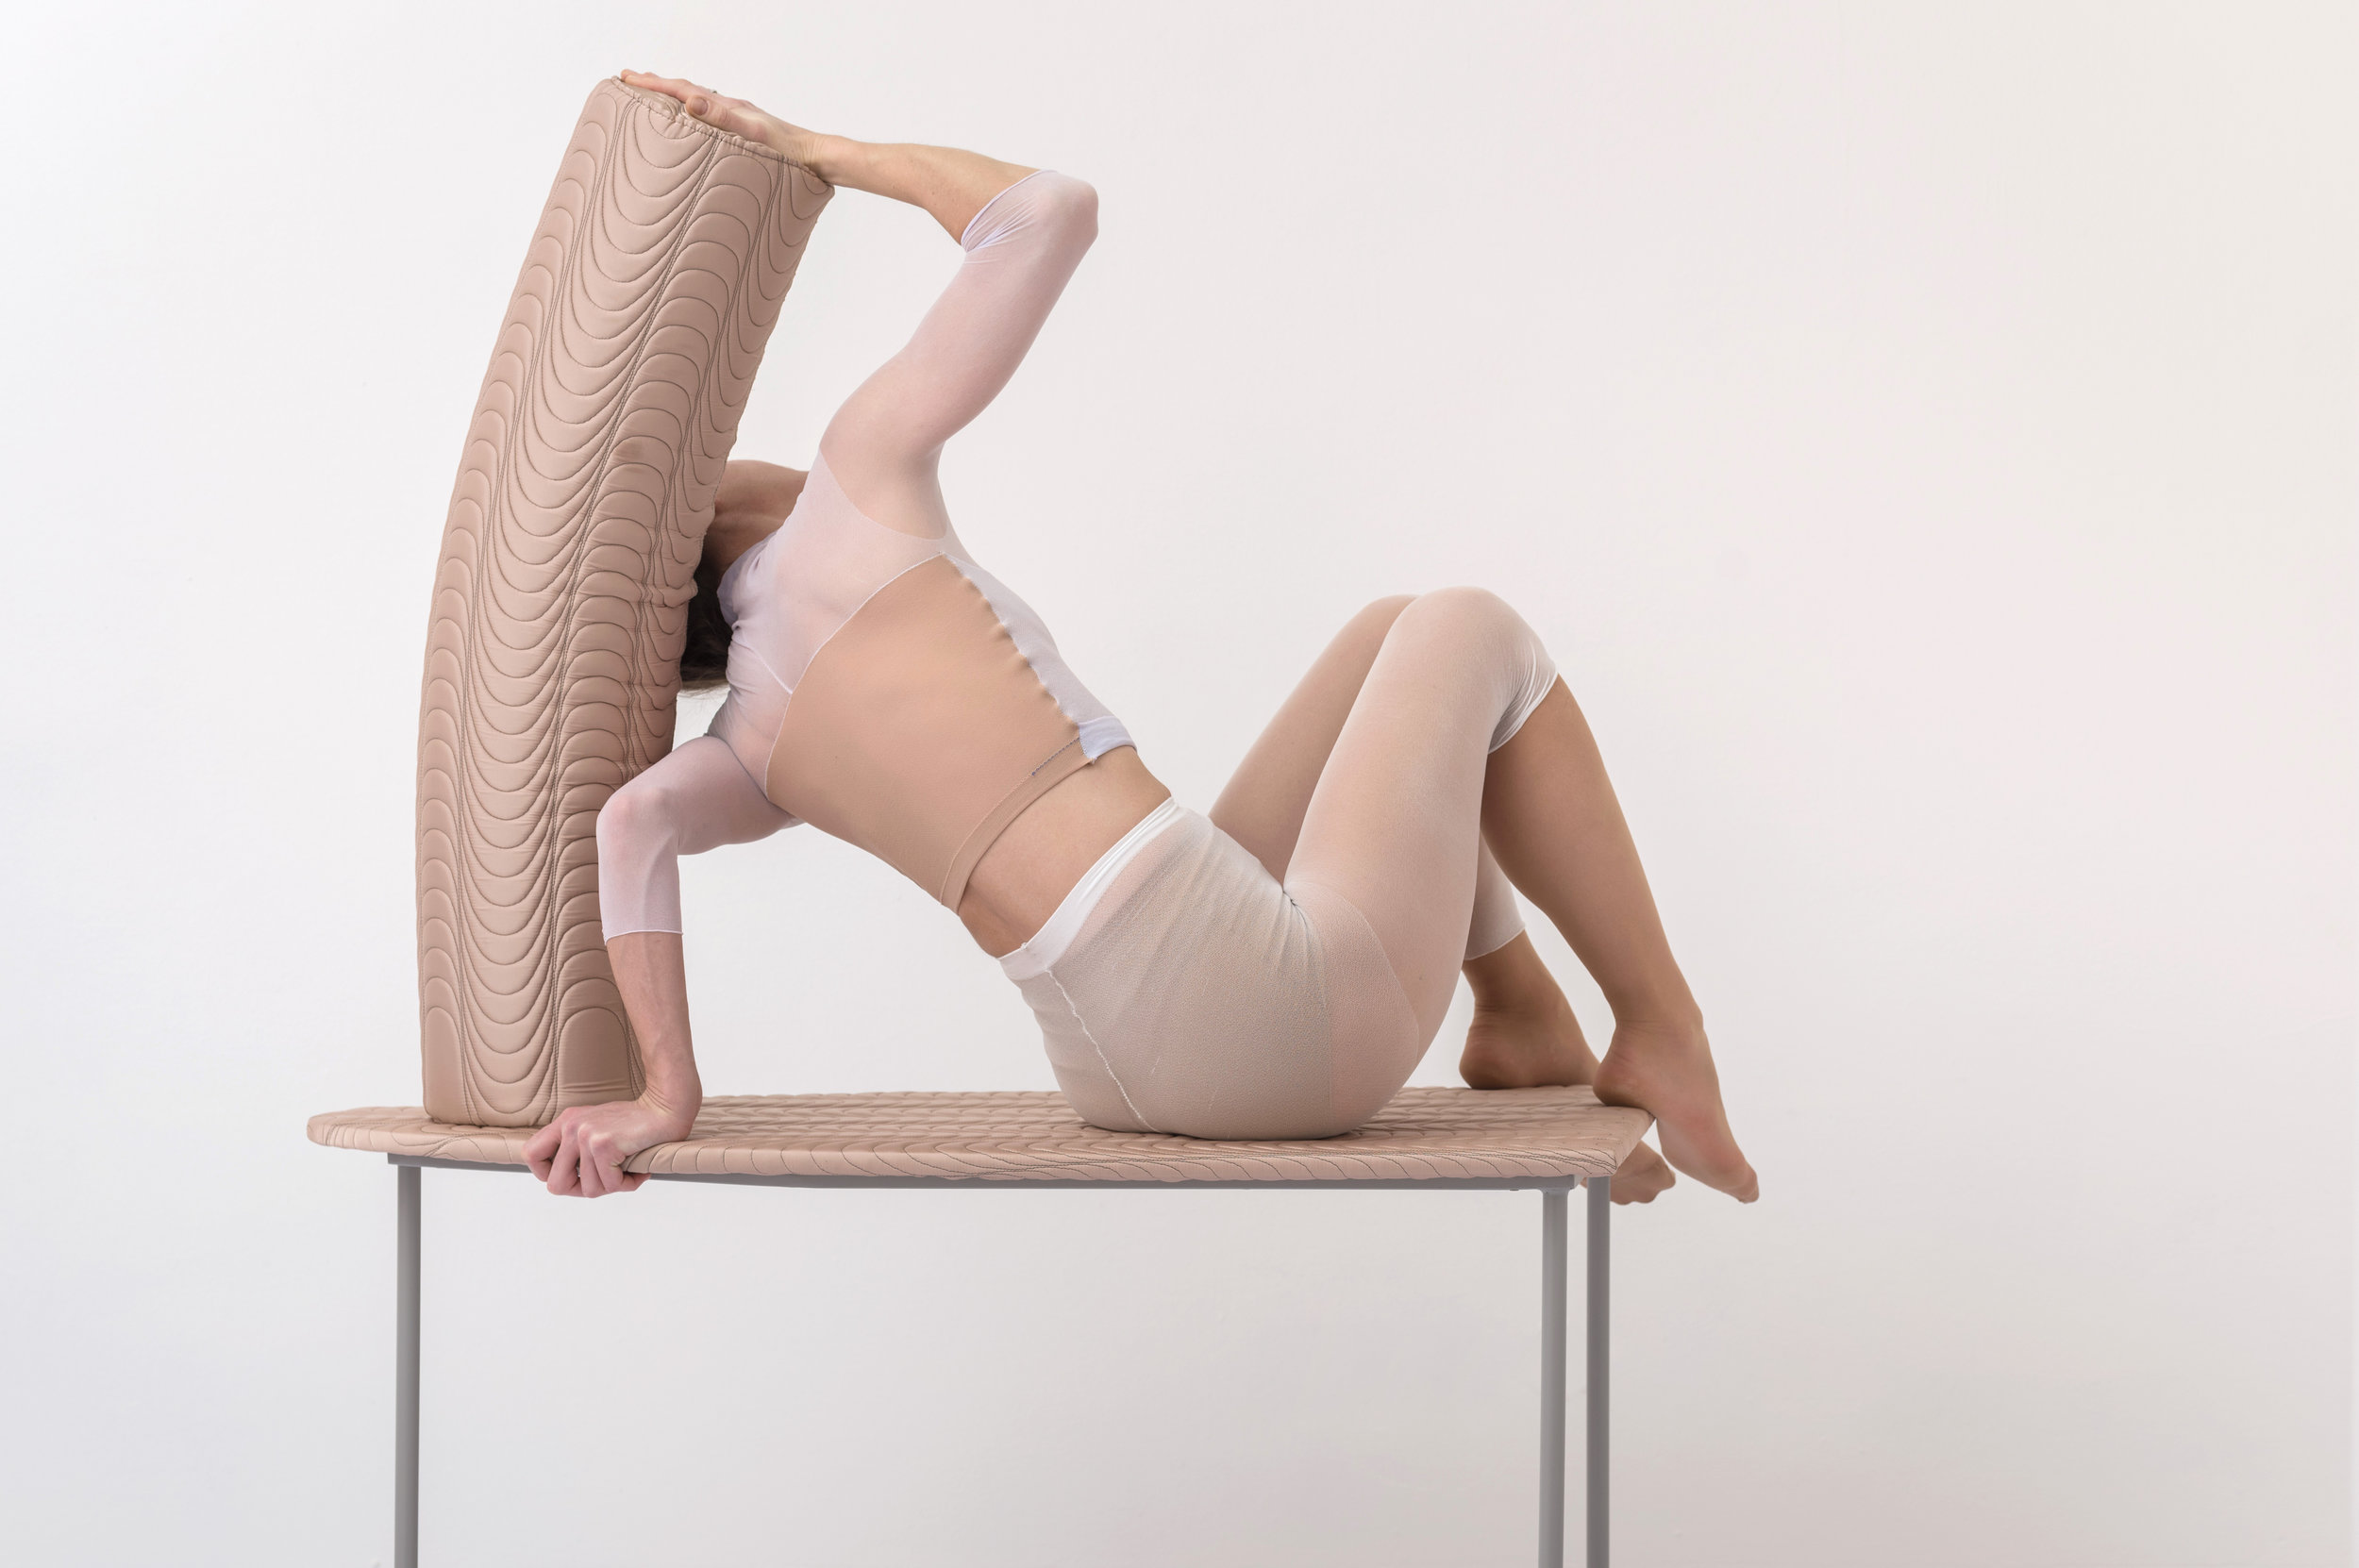 _8b_Klára Hosnedlová, Untitled (from the series Girls Want to Learn) wood upholstered furniture with model Nataša Novotná, 2018.jpg